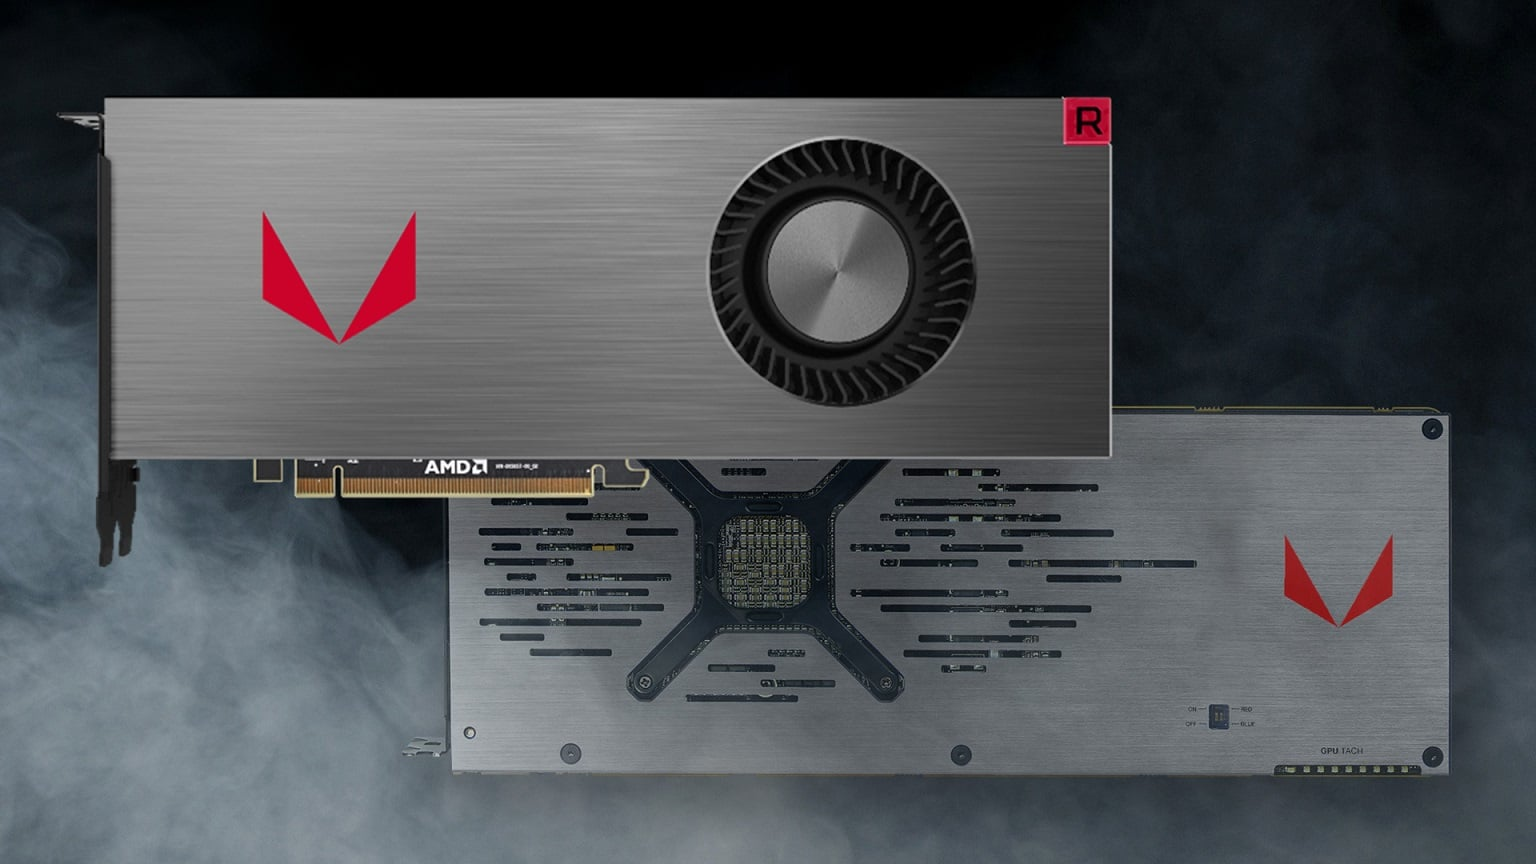 amd rx vega 64 limited edition siggraph techday slide deck 10